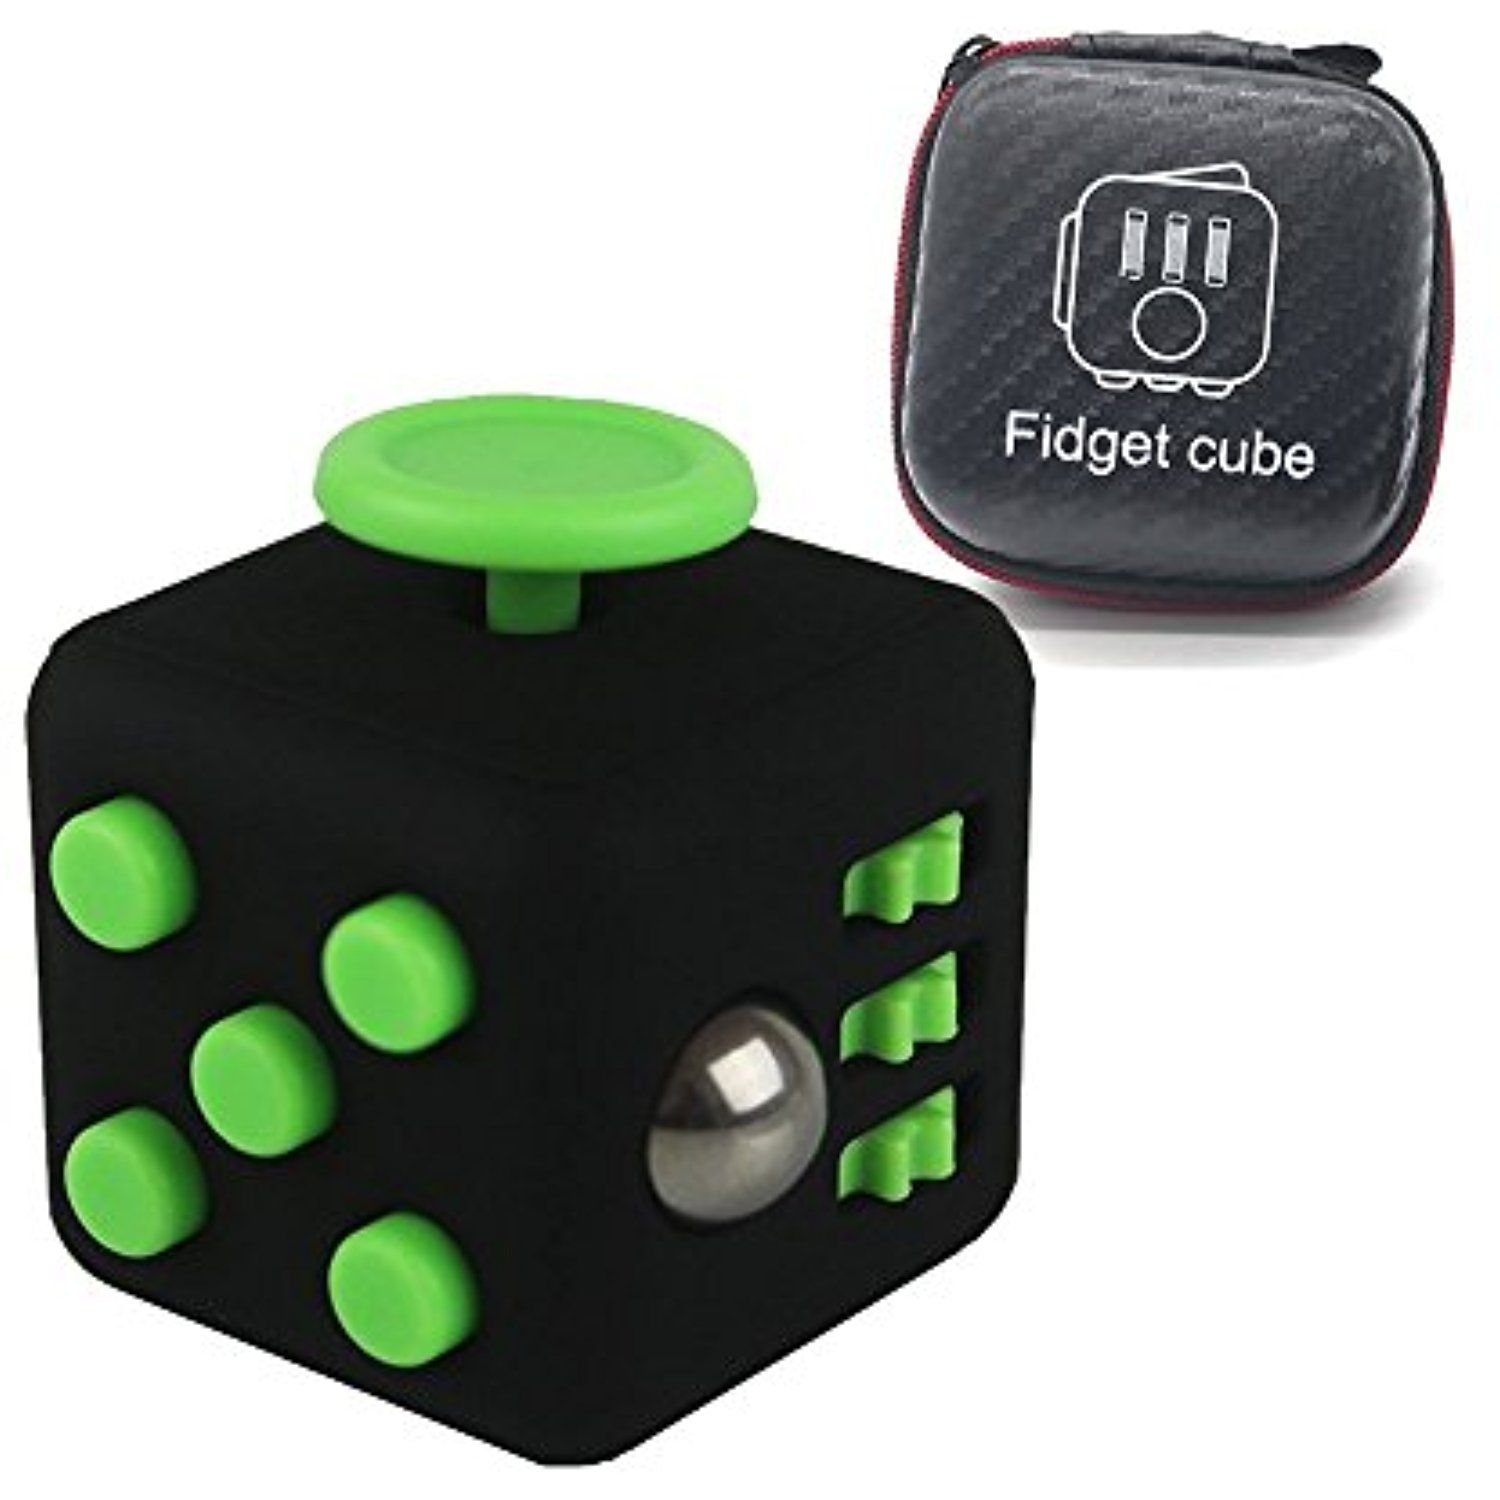 Relohas Fidget Cube,Relieves Stress and Anxiety for Adult and Children ,Anxiety Attention Release Toys With Button Best Gift for Fidgeters (Black and Green) ...